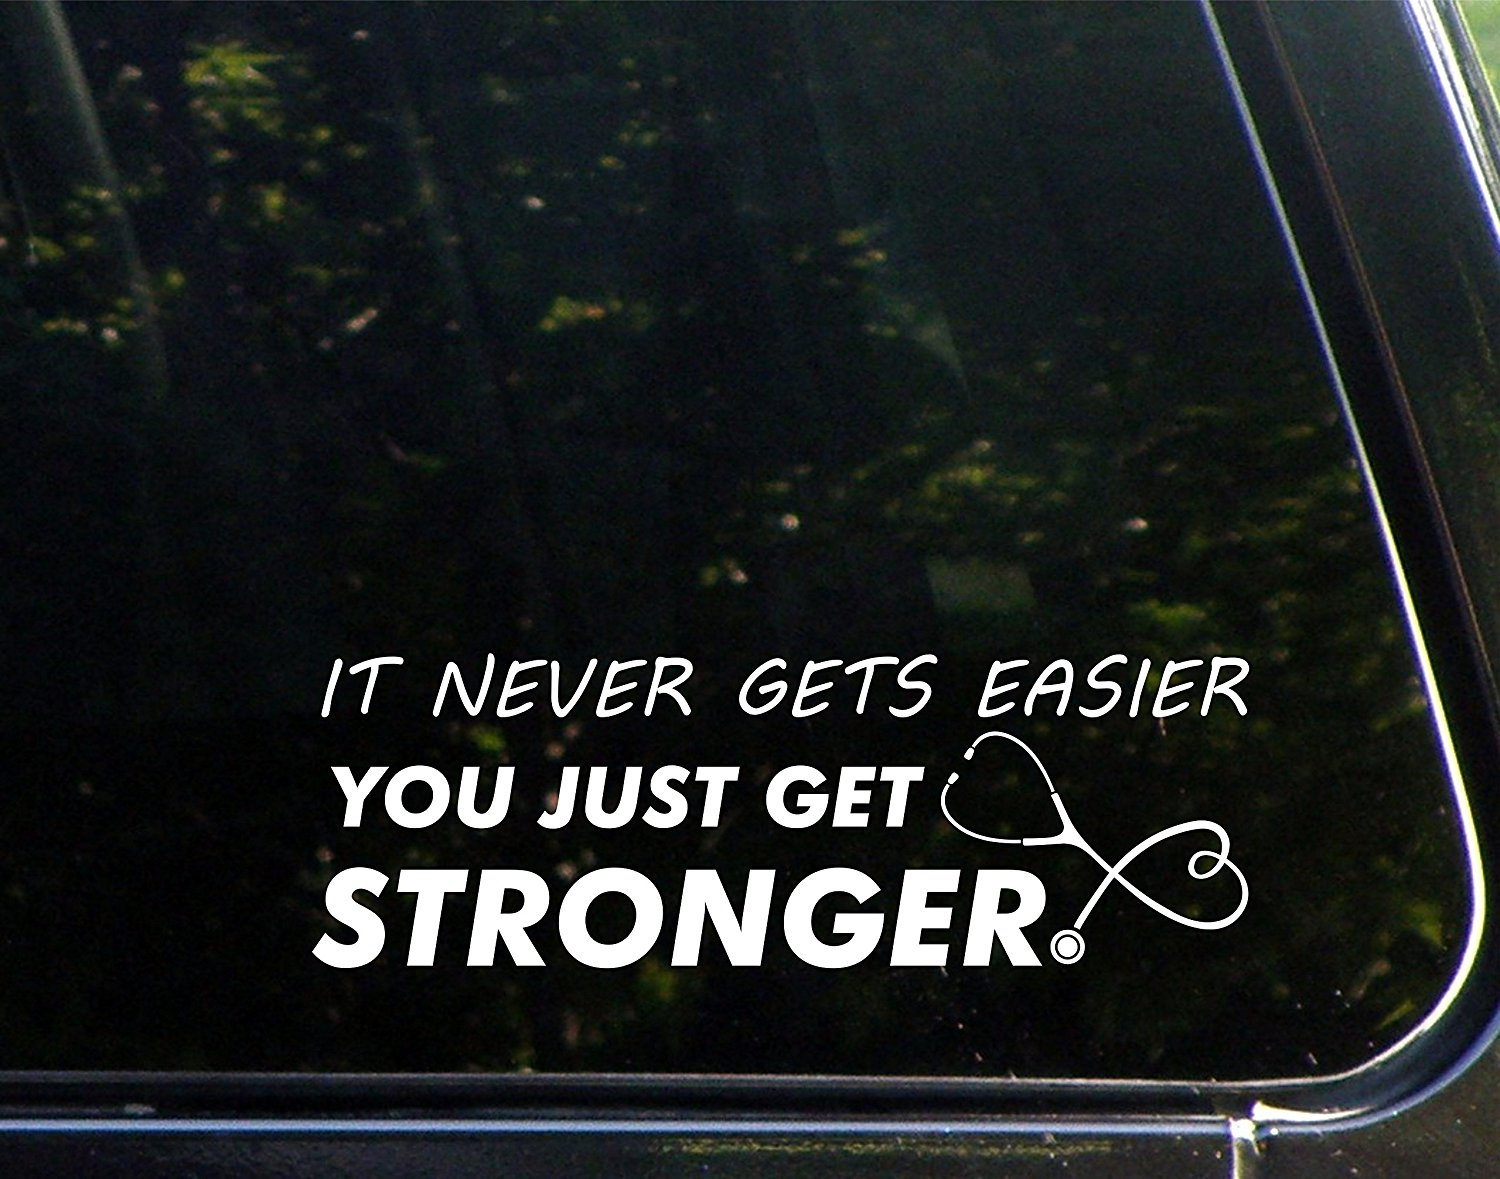 Car Sticker - It Never Gets Easier You Just Get Stronger